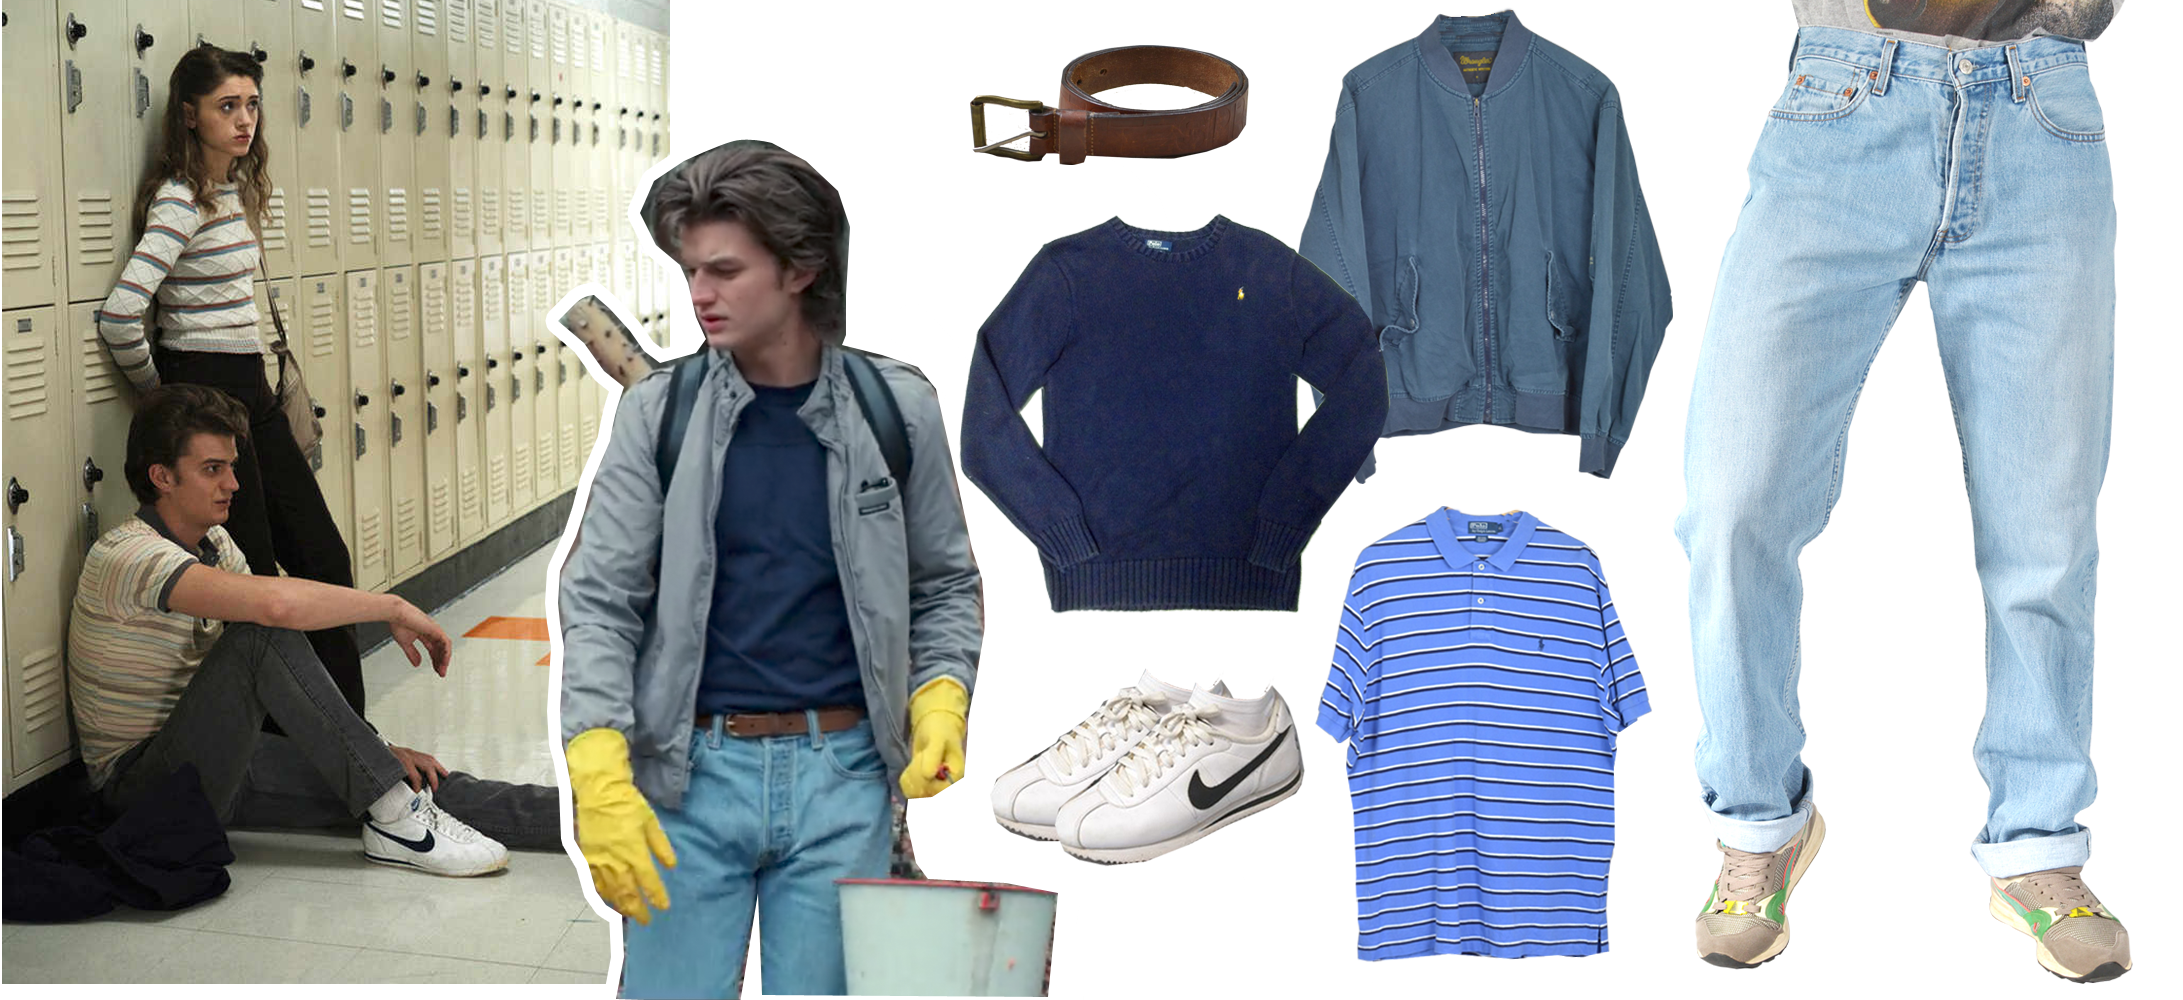 STEVE HARRINGTON Style | Lookbook